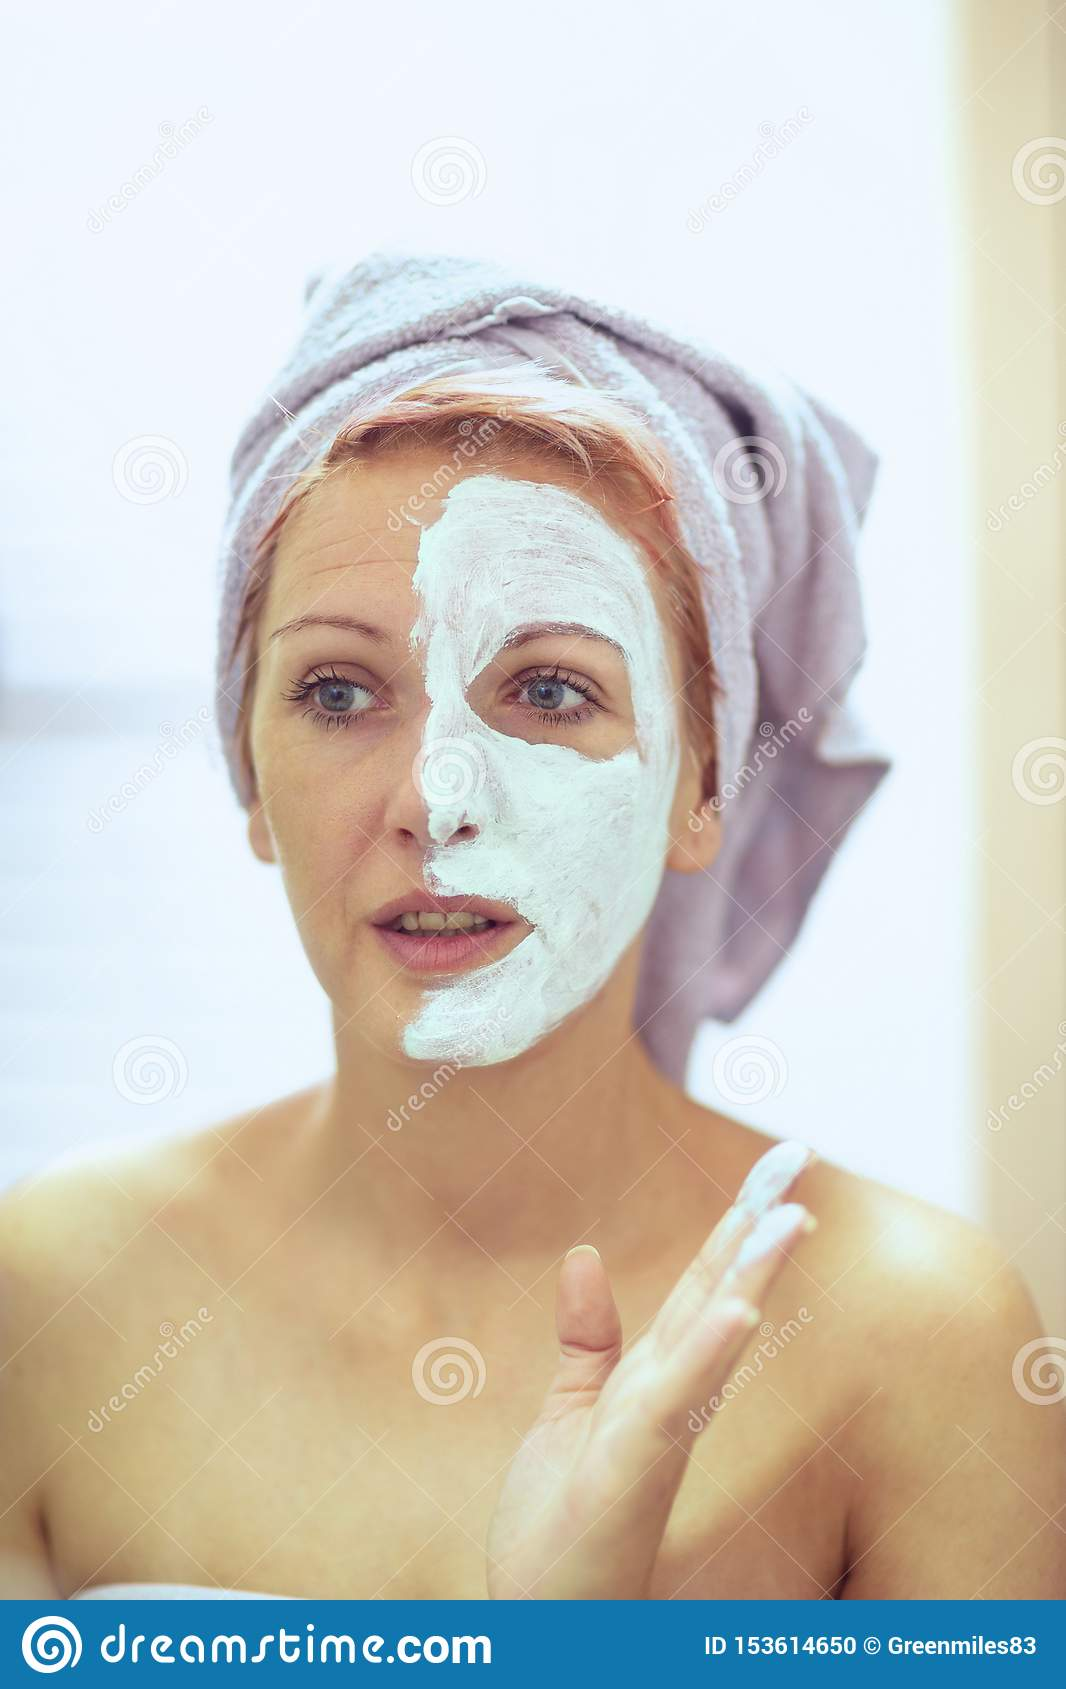 Smiling Woman applying facial mask. Beauty treatments